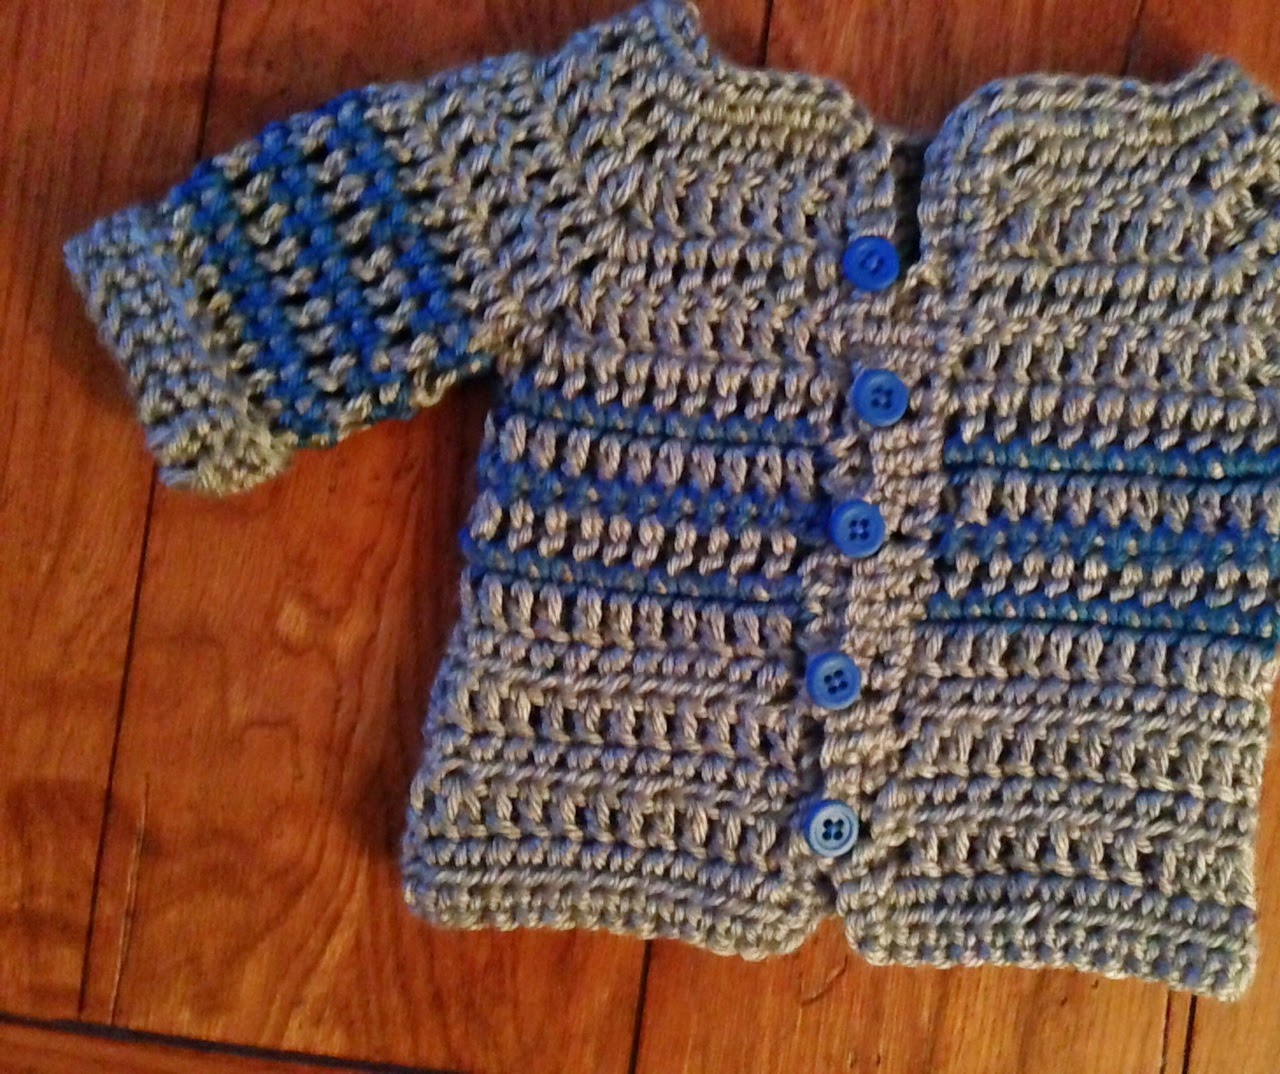 Crochet Baby Boy Sweater Free Patterns : Craft Brag: Crochet Baby Boy Sweater Pattern - Free